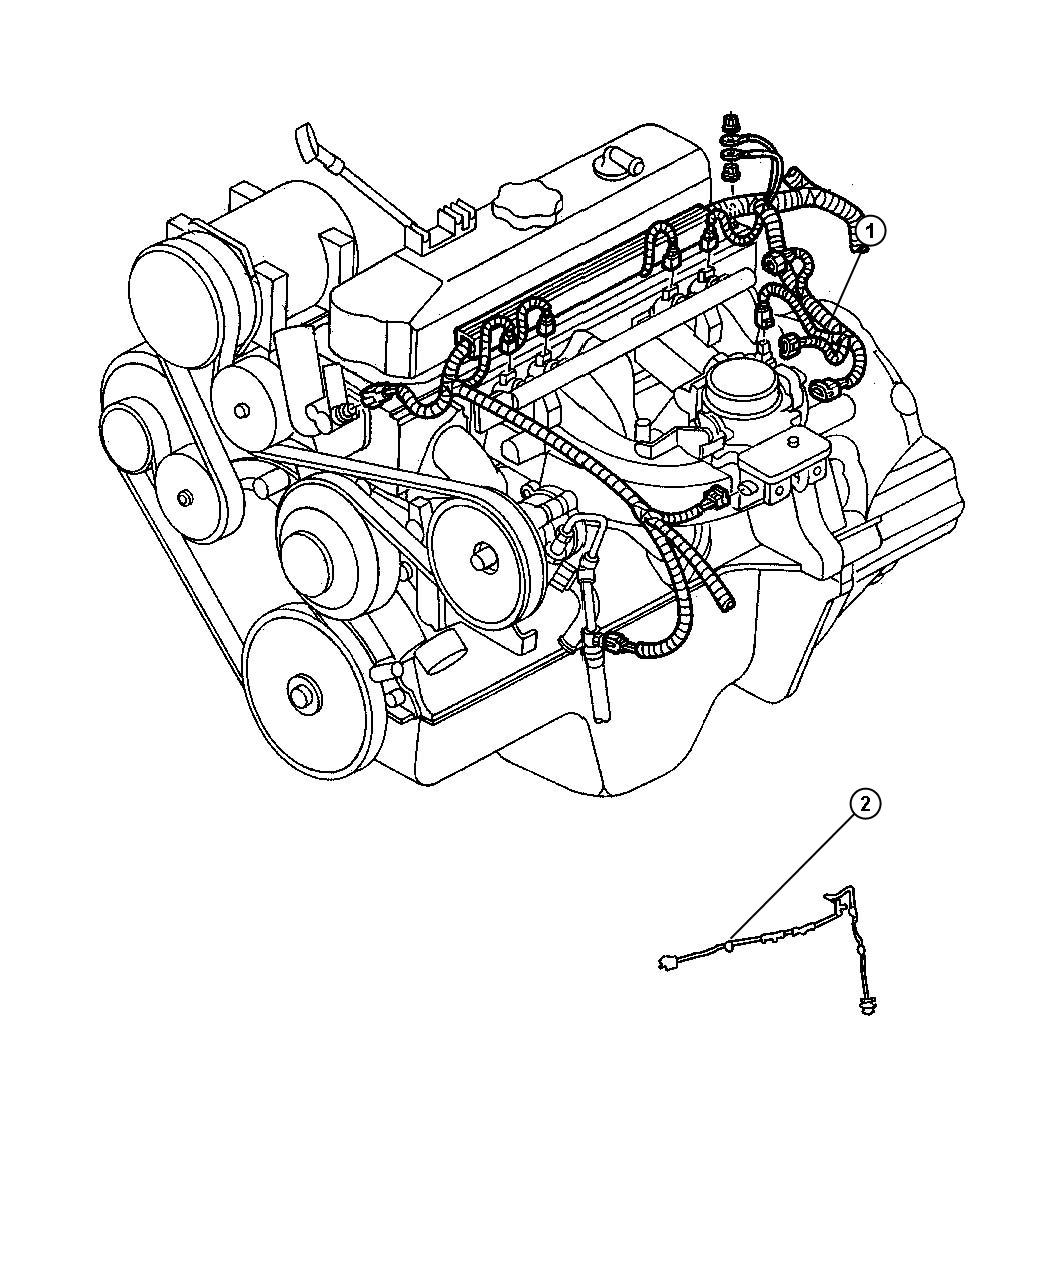 Dodge Durango Wiring Engine Federal And Export U S 50